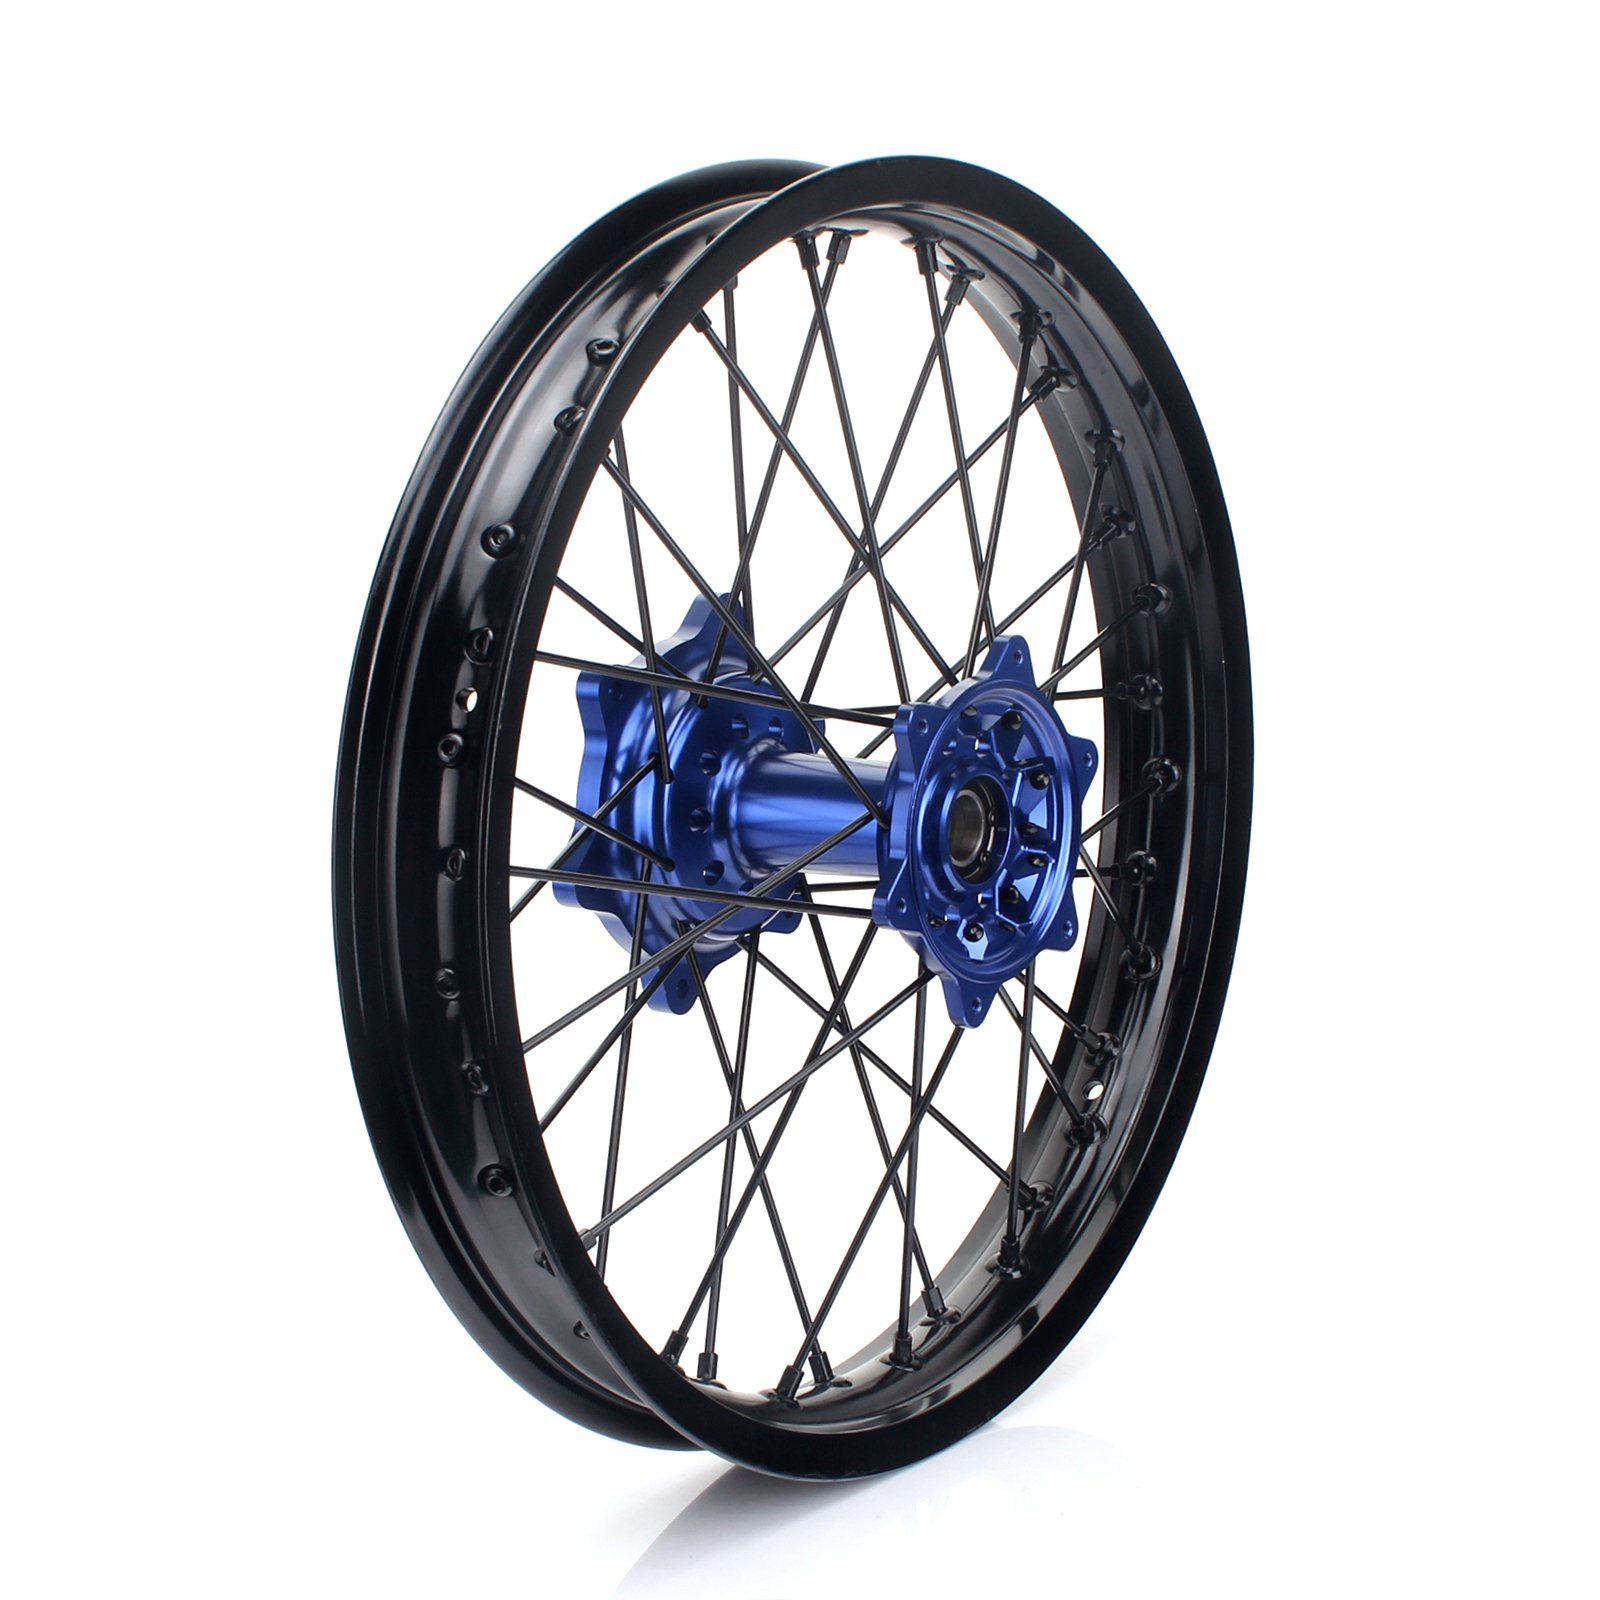 TARAZON 18'' MX Rear Complete Wheel Set Rim Spokes Blue Hub for Yamaha YZ250F YZF250 YZ450F YZF450 2009-2017 by TARAZON (Image #1)